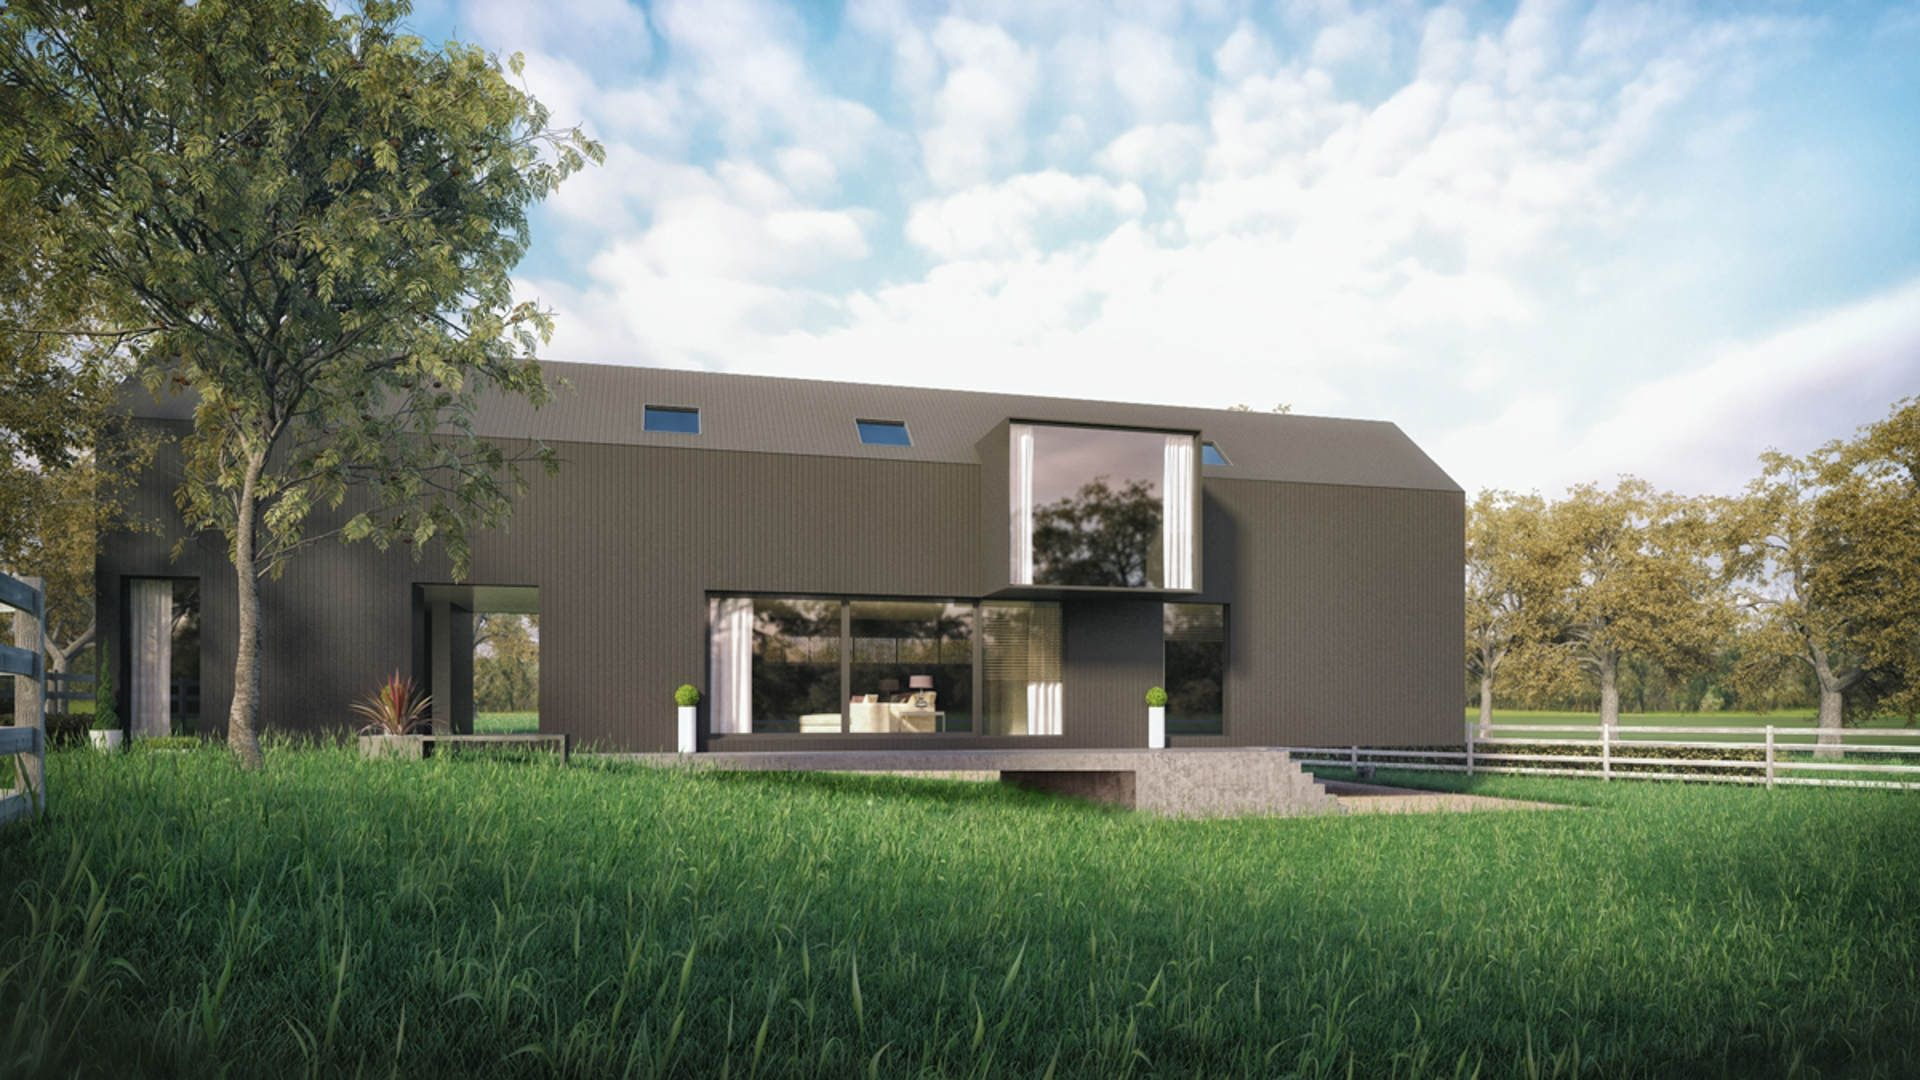 Ballyhome project 2020 architects small modern home modern homes architects modern tiny